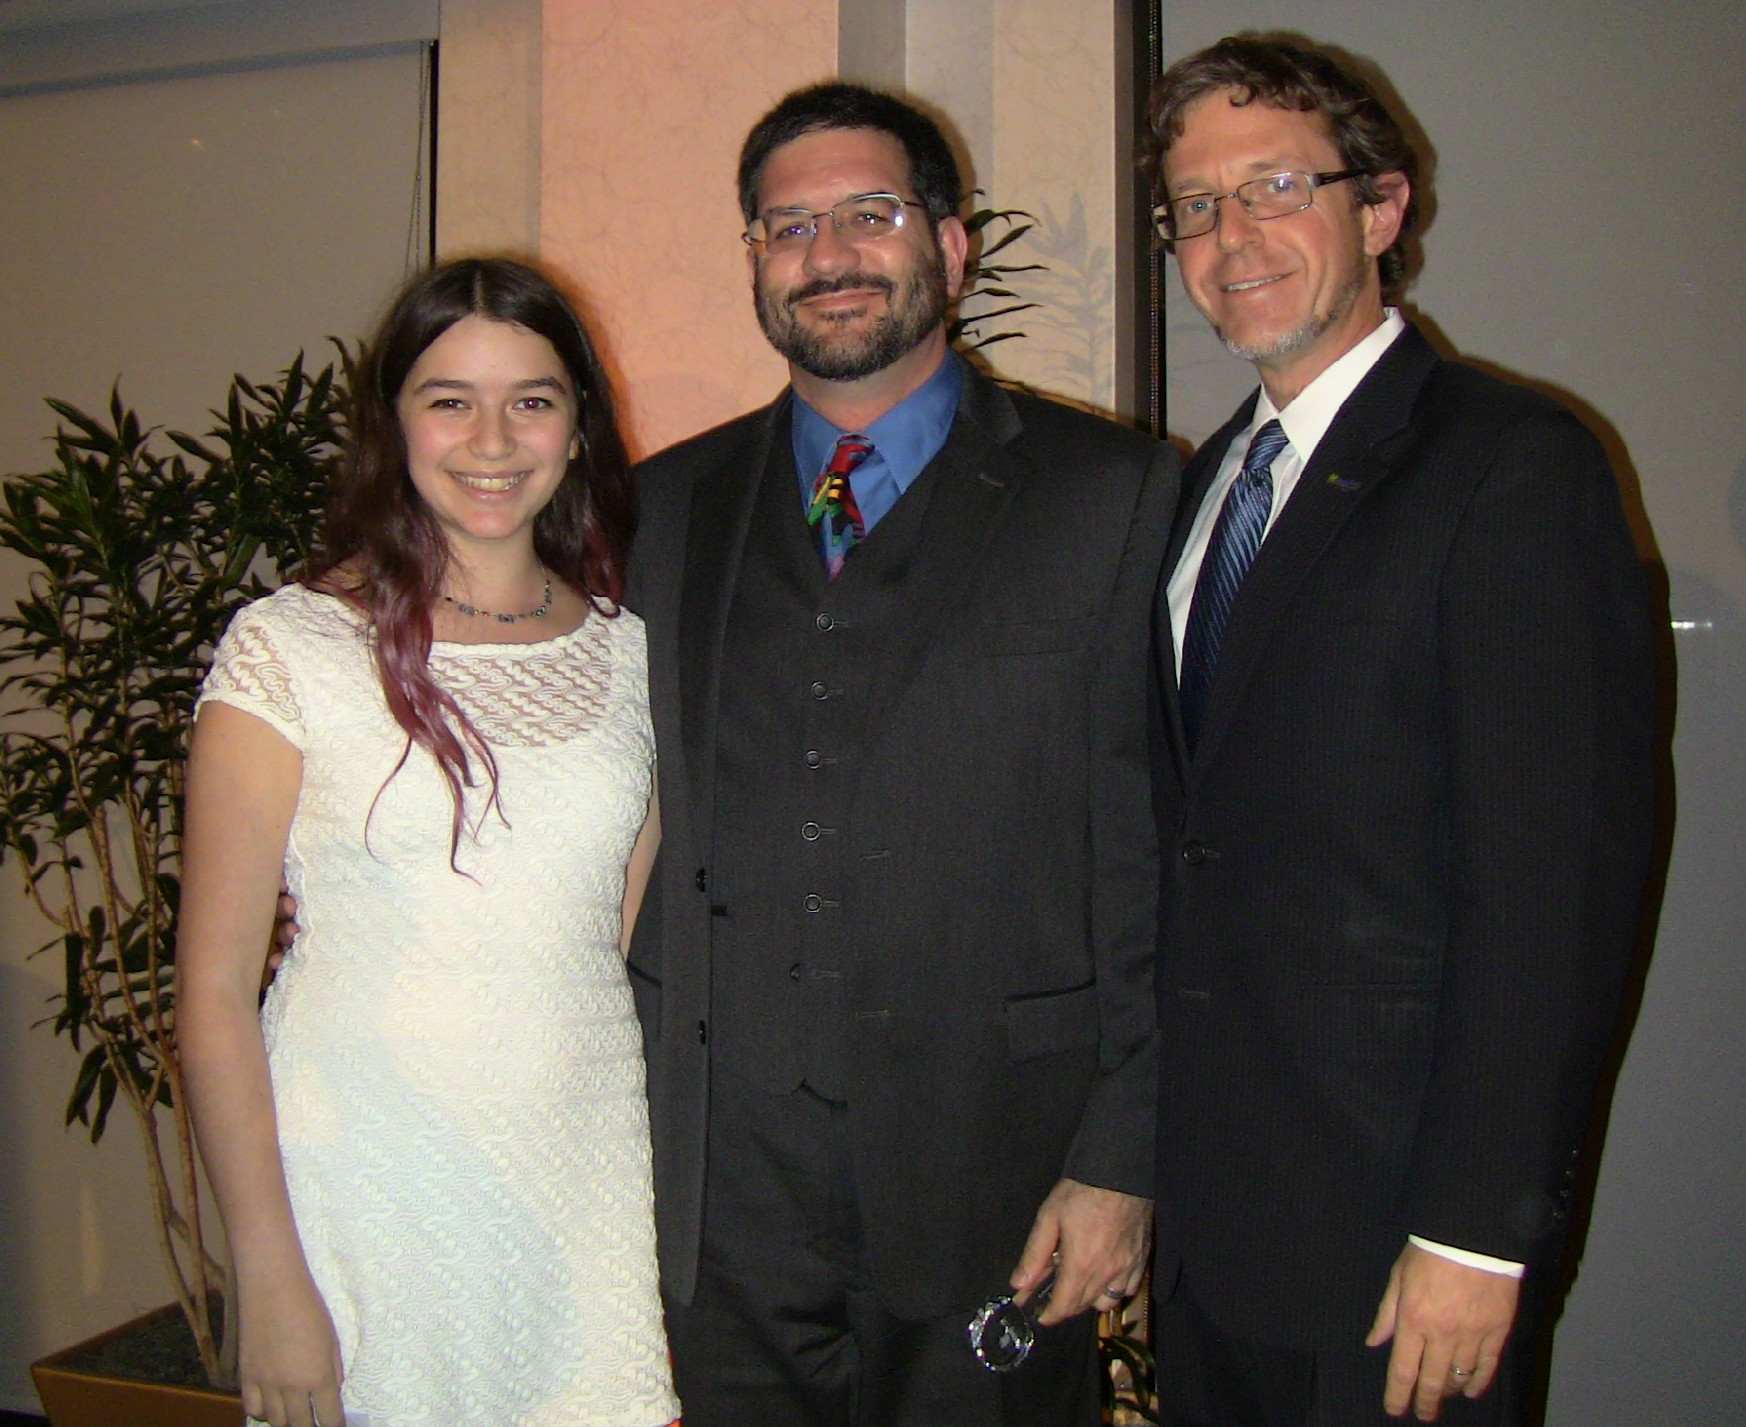 4e37a3b95d6363bea26f_Rabbi-Daughter-Emcee.jpg